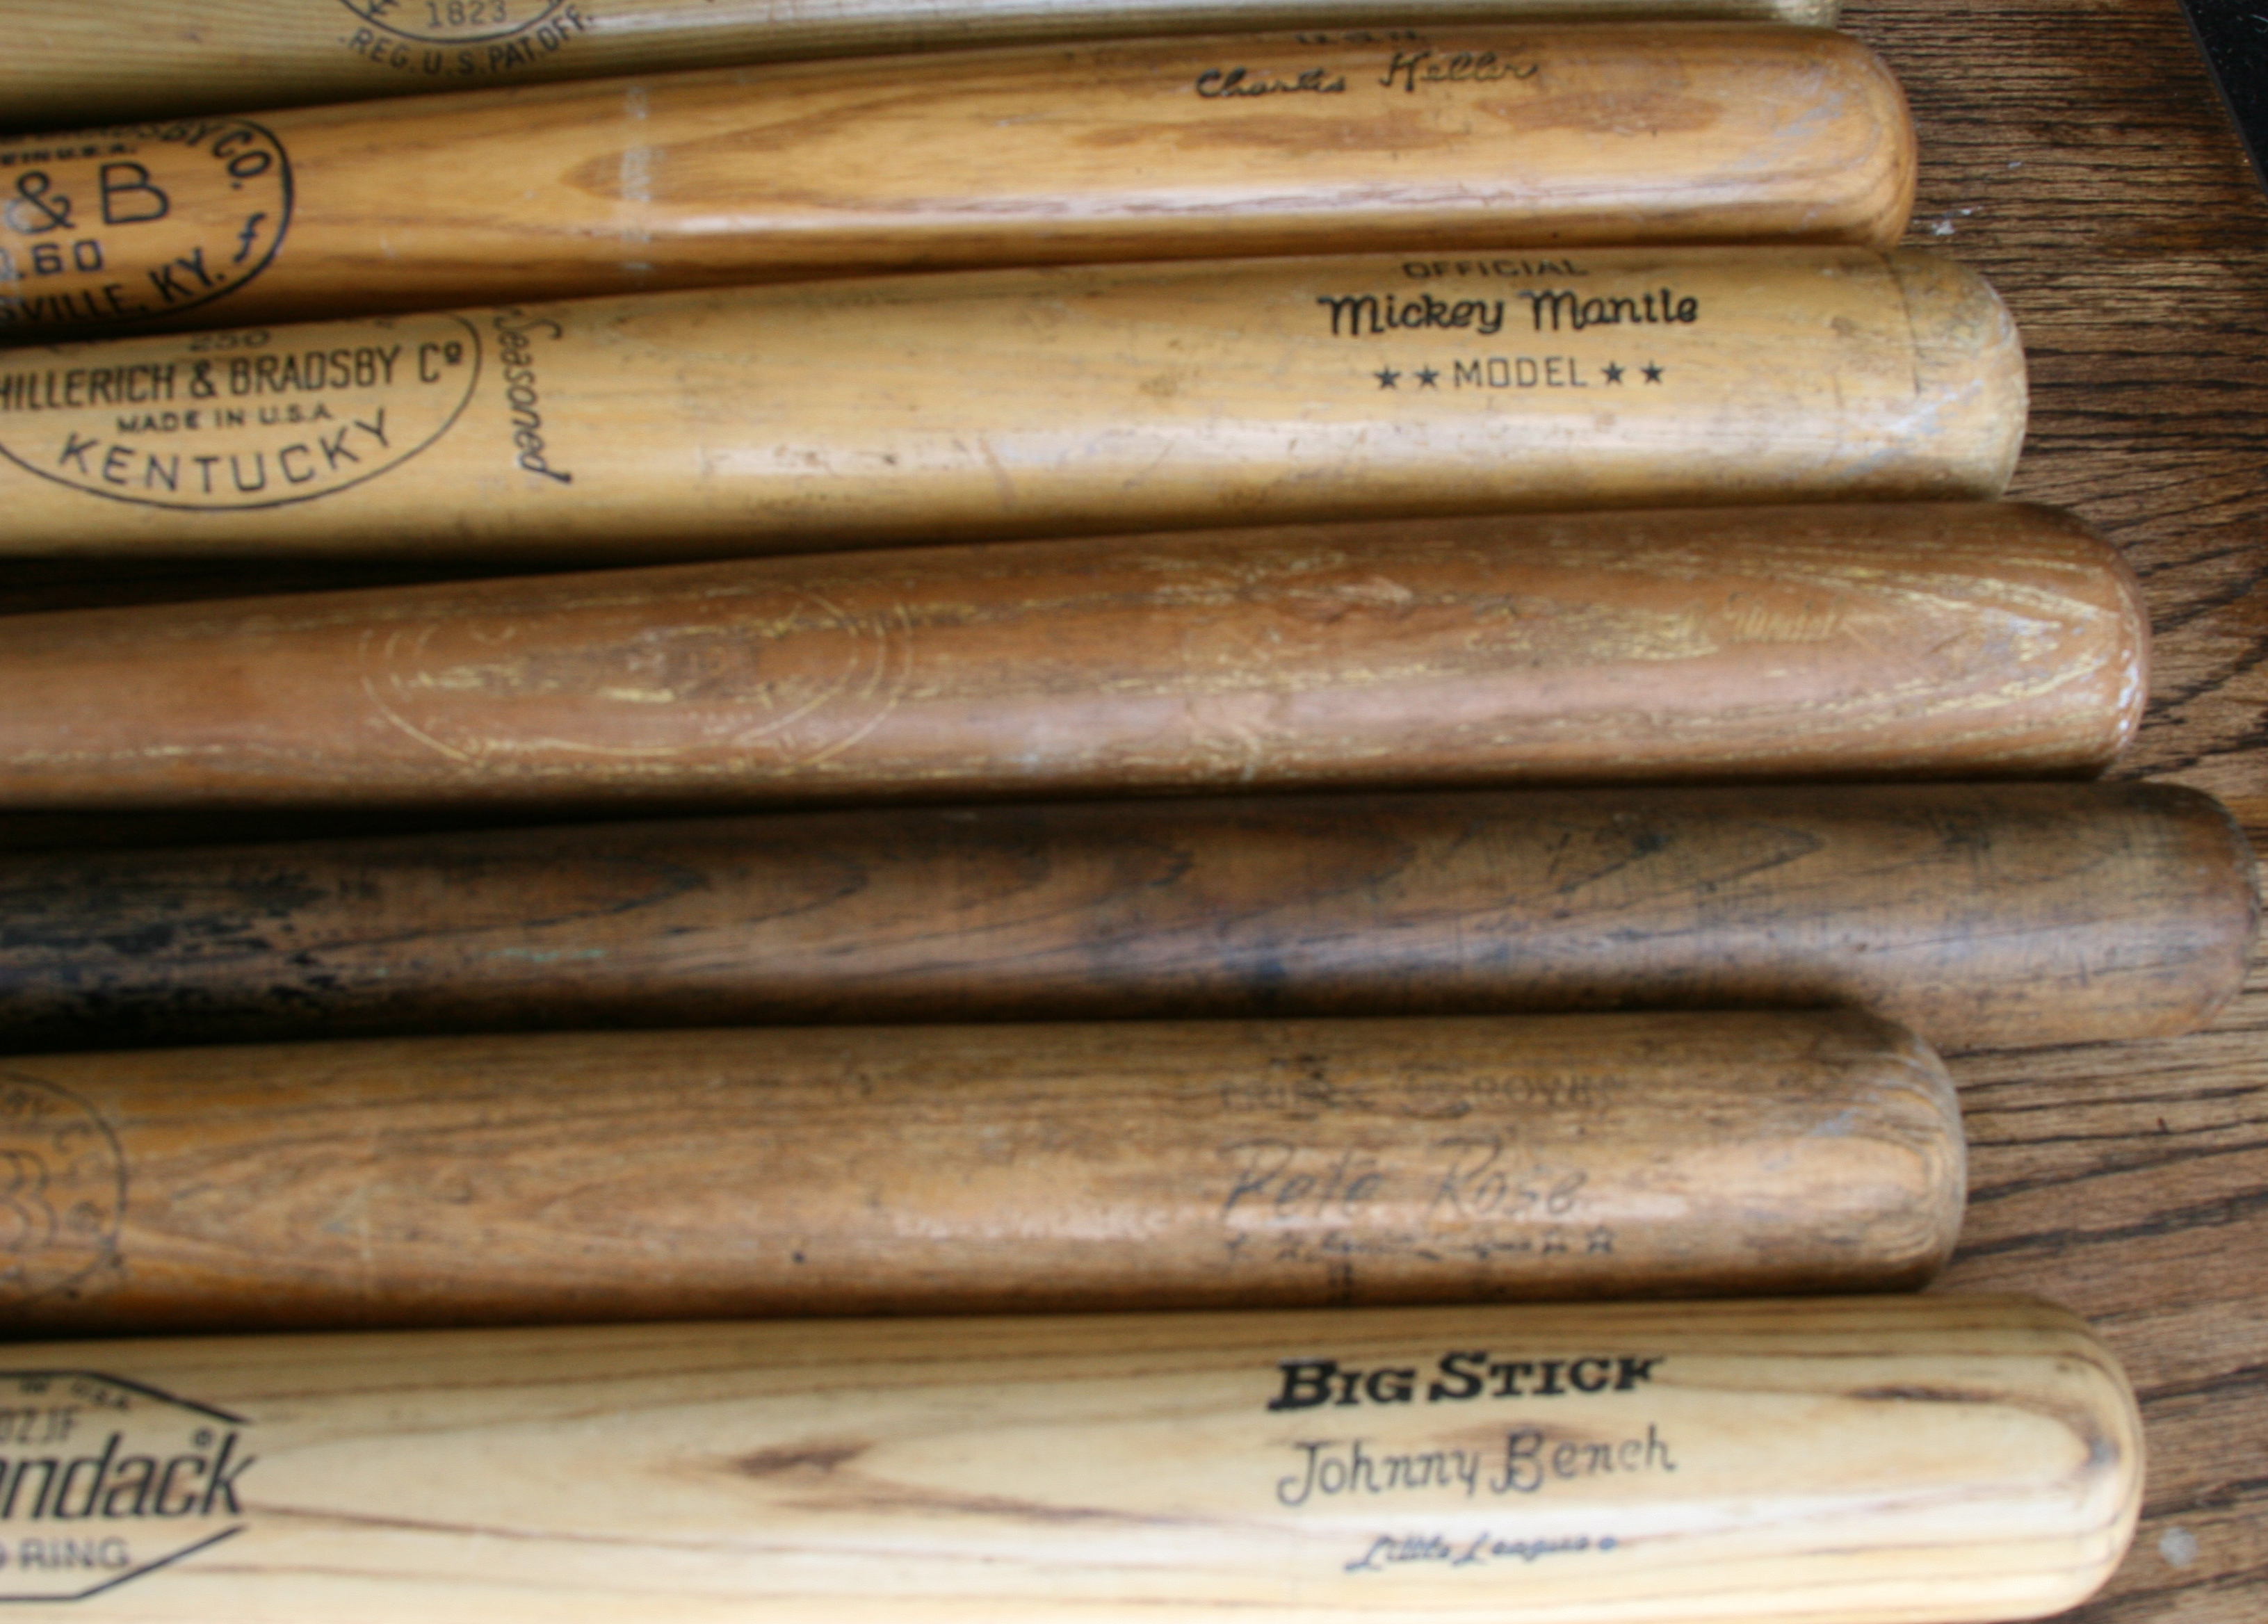 maclendon-wealth-management-baseballbats